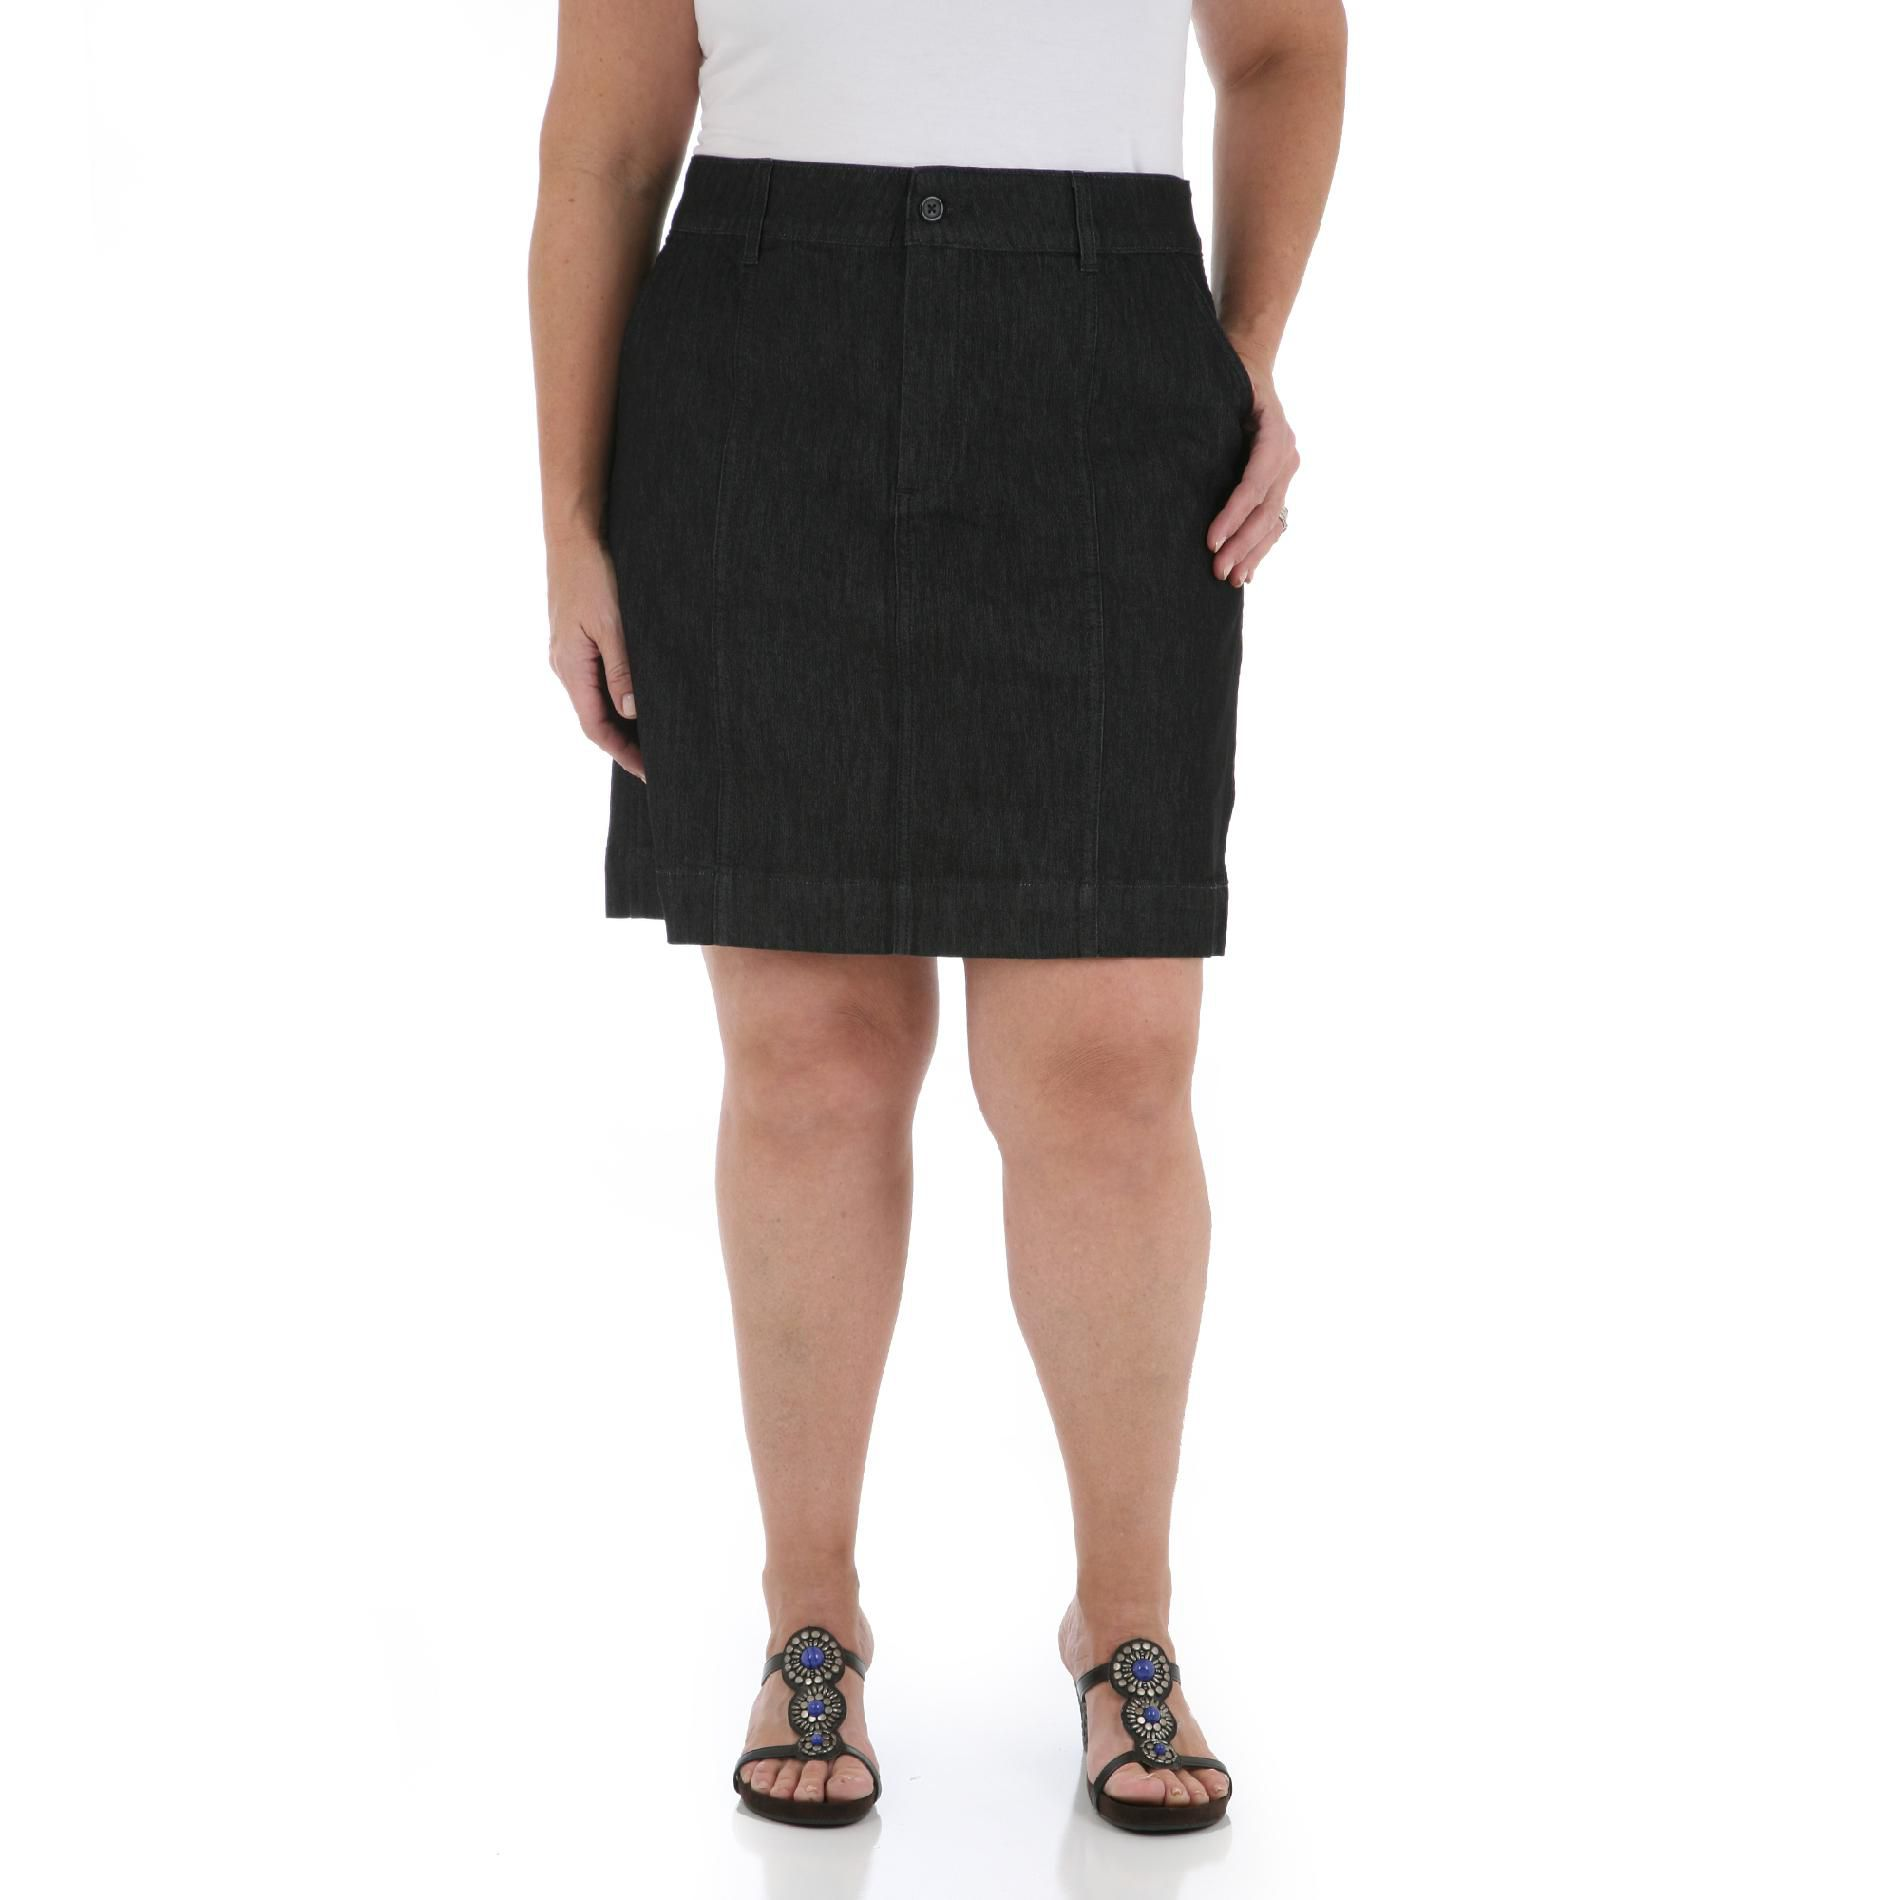 Rider Women's Skirt 'Nicole' at Kmart.com